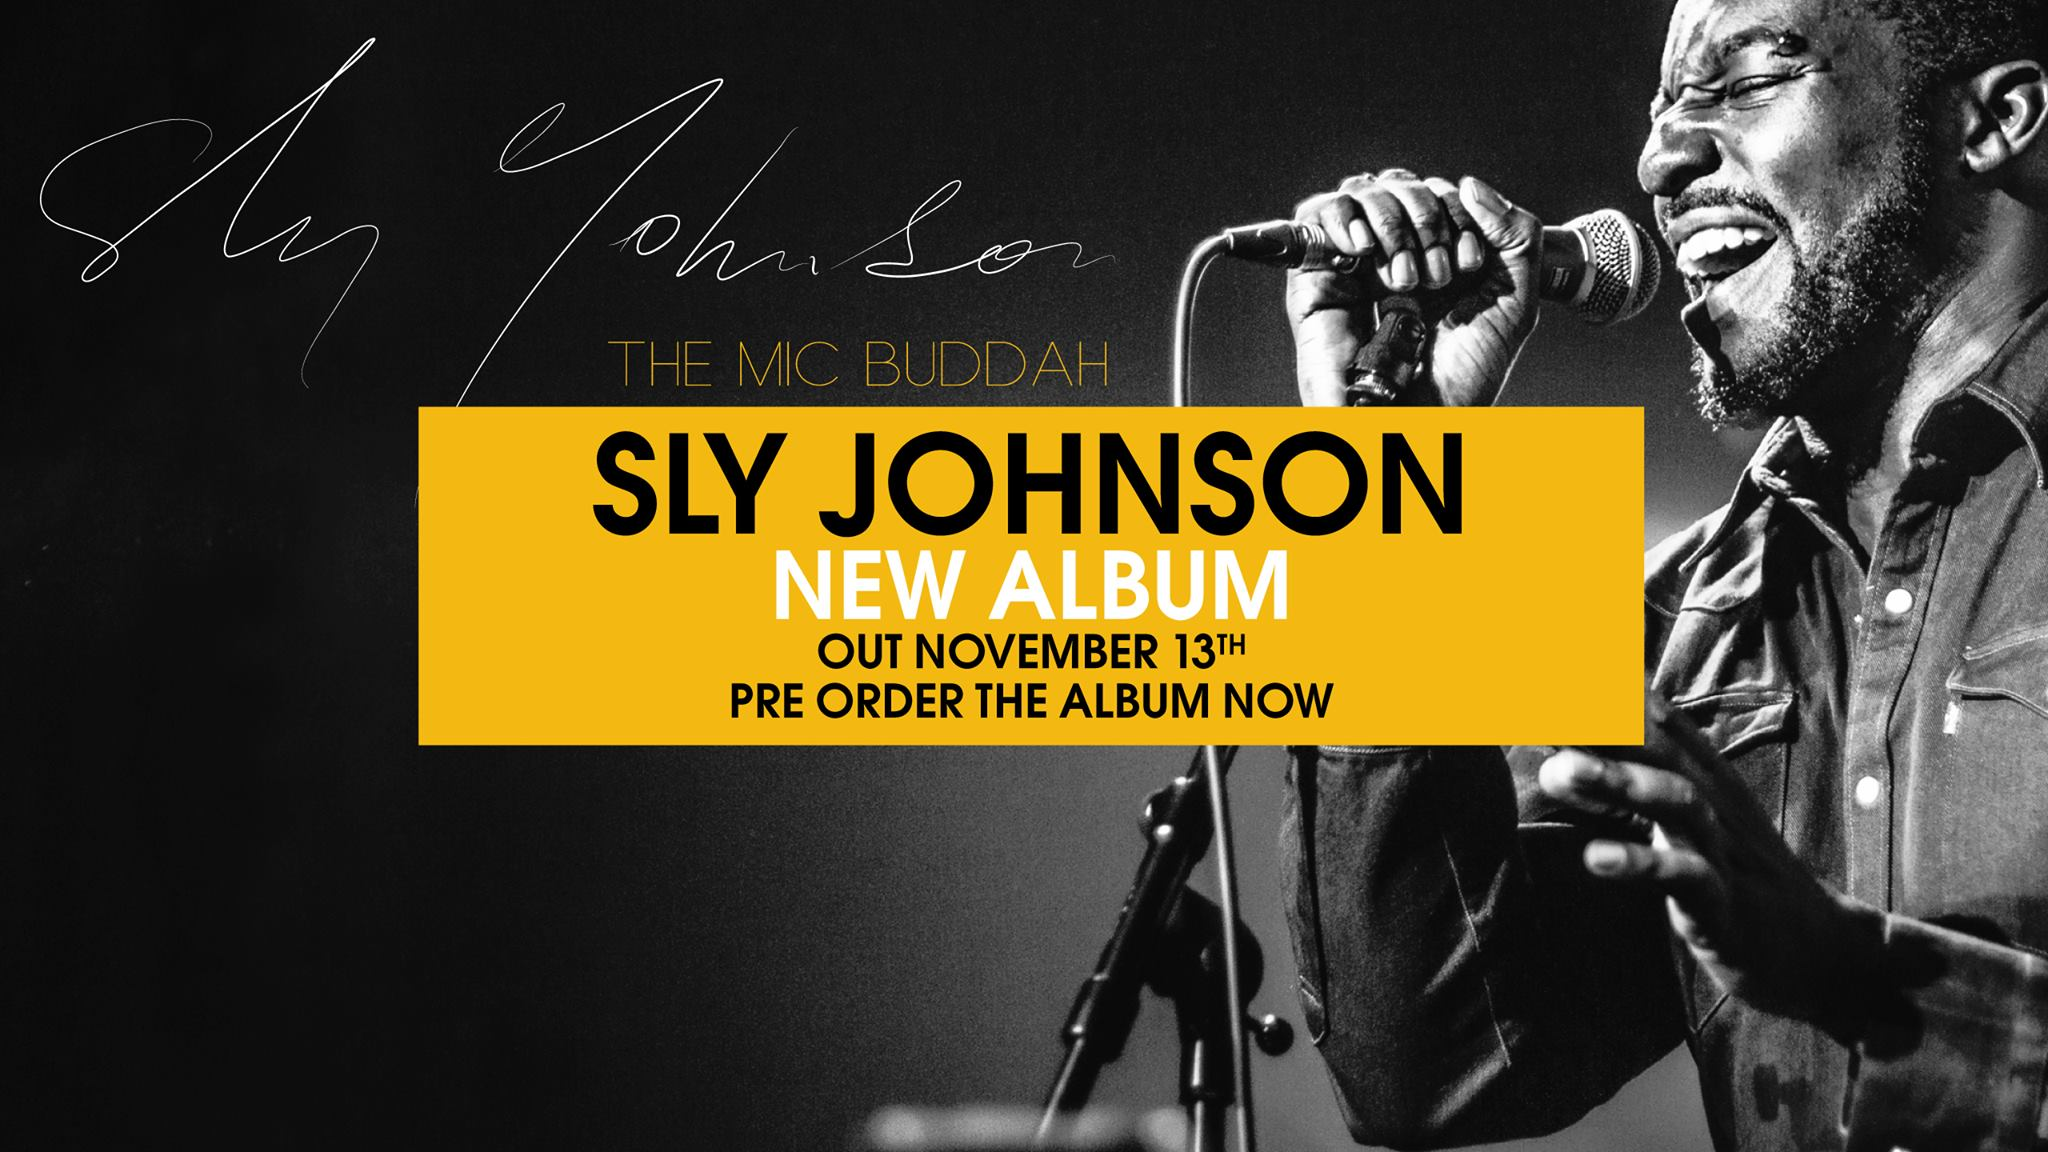 sly johnson